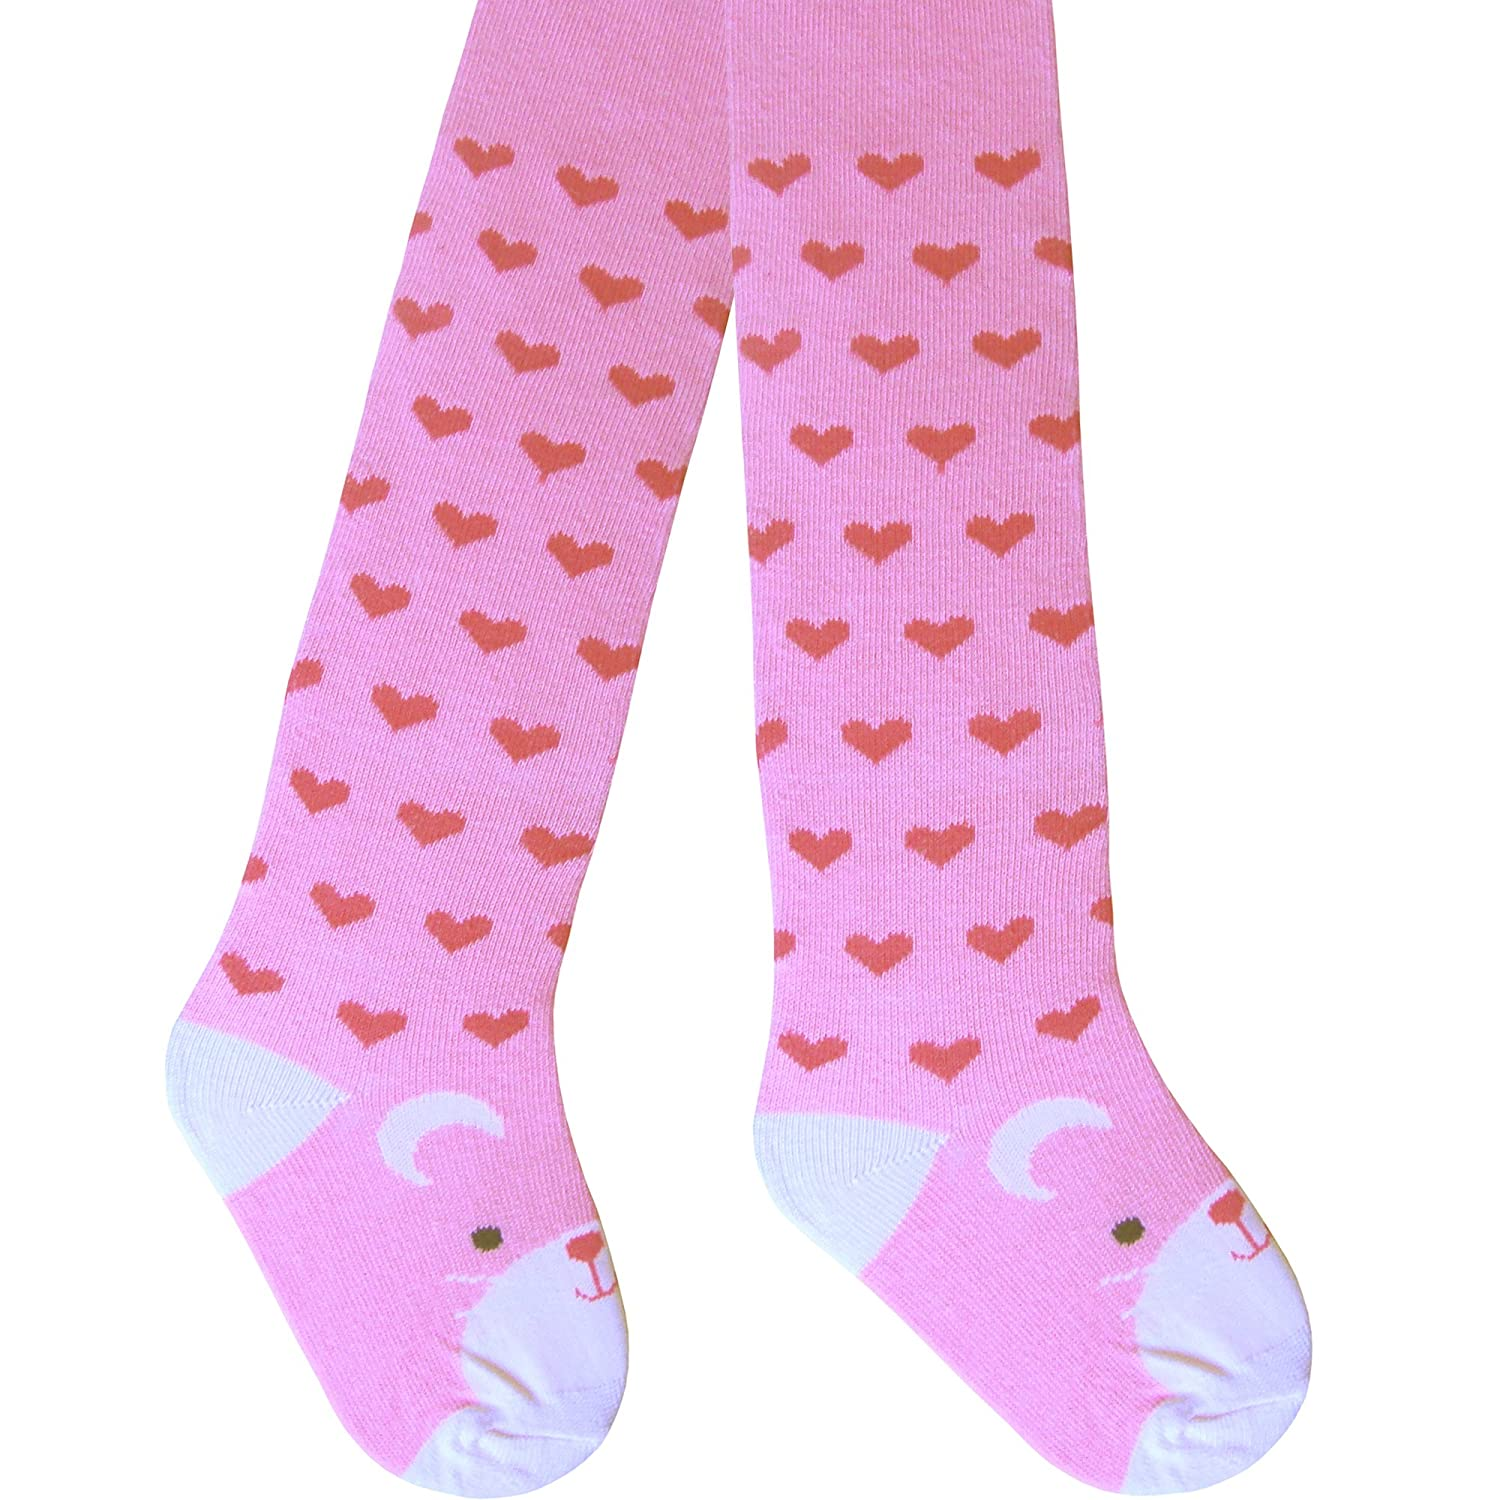 Baby Girls /& Toddlers Super Soft Comfort Cotton Rich Pink Patterned Tights